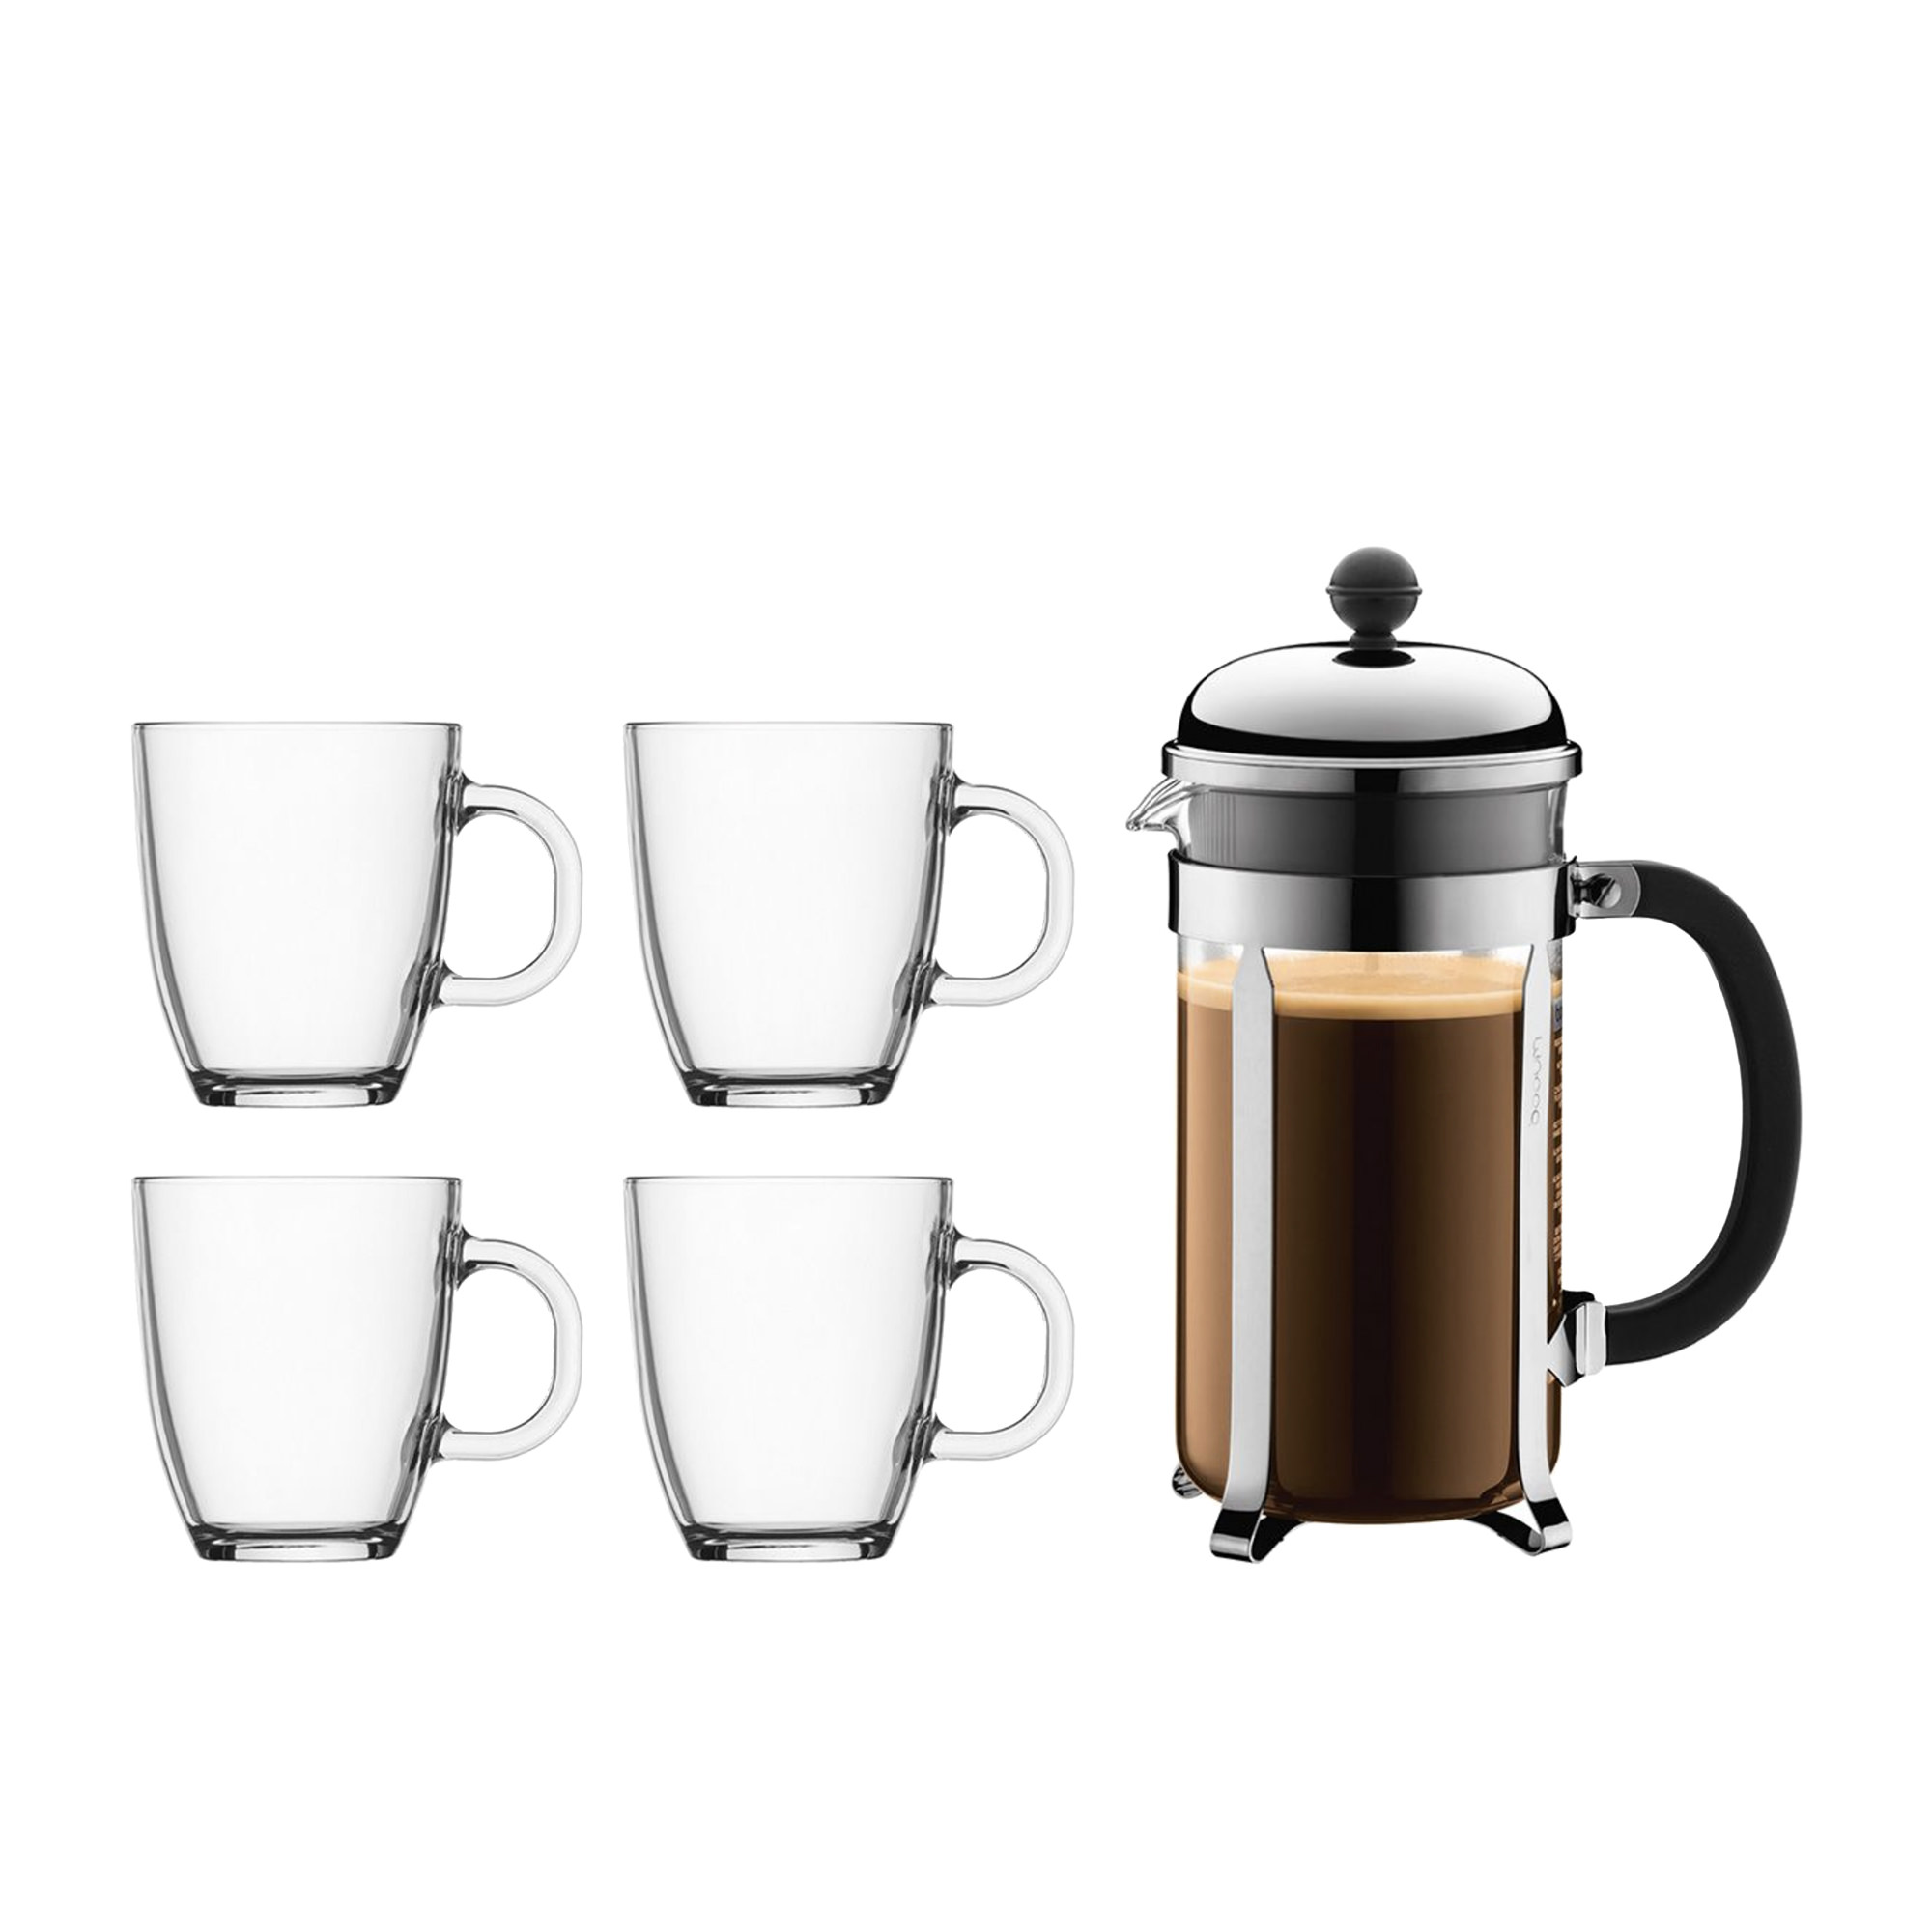 Bodum Chambord Set w/ Coffee Press 8 Cup & 4pc Coffee Mugs